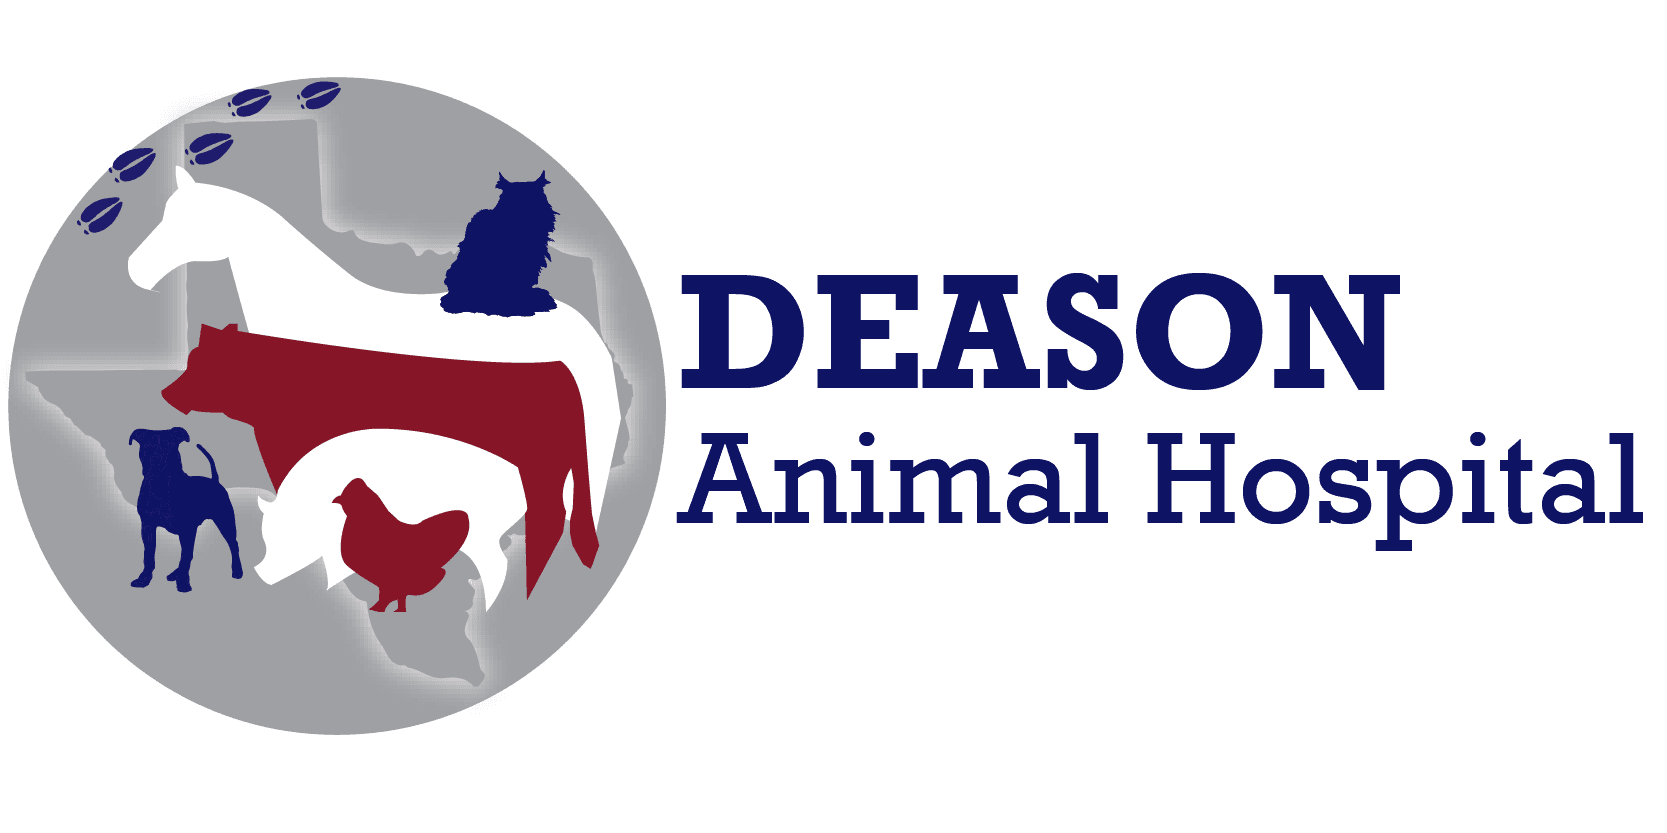 Veterinary diagnostic services in Floresville Texas, Stockdale, Pleasanton and Wilson County Texas